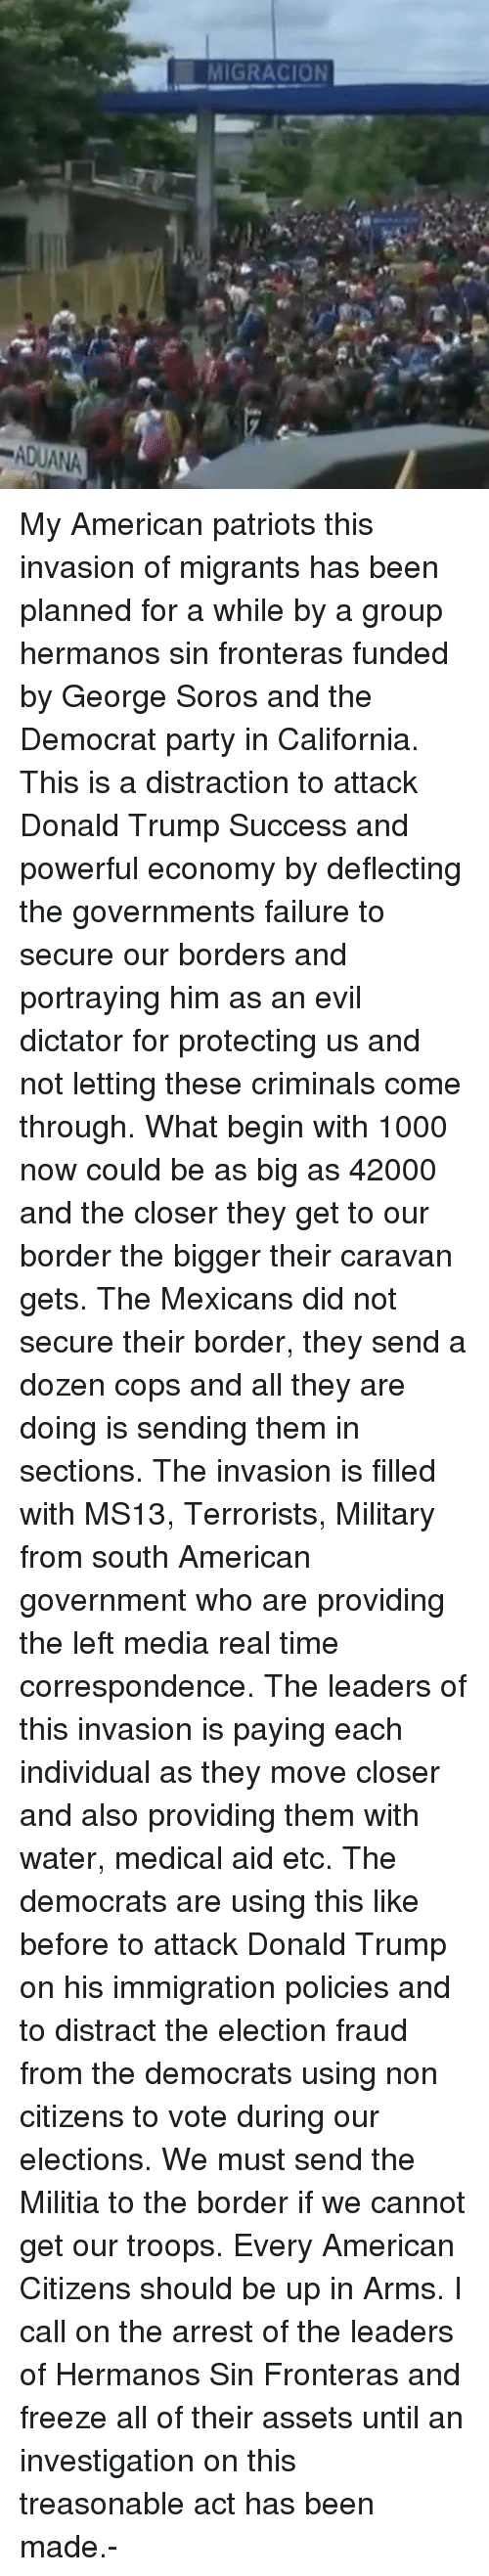 The Closer: MIGRACION  ADUANA My American patriots this invasion of migrants has been planned for a while by a group hermanos sin fronteras funded by George Soros and the Democrat party in California. This is a distraction to attack Donald Trump Success and powerful economy by deflecting the governments failure to secure our borders and portraying him as an evil dictator for protecting us and not letting these criminals come through. What begin with 1000 now could be as big as 42000 and the closer they get to our border the bigger their caravan gets. The Mexicans did not secure their border, they send a dozen cops and all they are doing is sending them in sections. The invasion is filled with MS13, Terrorists, Military from south American government who are providing the left media real time correspondence. The leaders of this invasion is paying each individual as they move closer and also providing them with water, medical aid etc. The democrats are using this like before to attack Donald Trump on his immigration policies and to distract the election fraud from the democrats using non citizens to vote during our elections. We must send the Militia to the border if we cannot get our troops. Every American Citizens should be up in Arms. I call on the arrest of the leaders of Hermanos Sin Fronteras and freeze all of their assets until an investigation on this treasonable act has been made.-